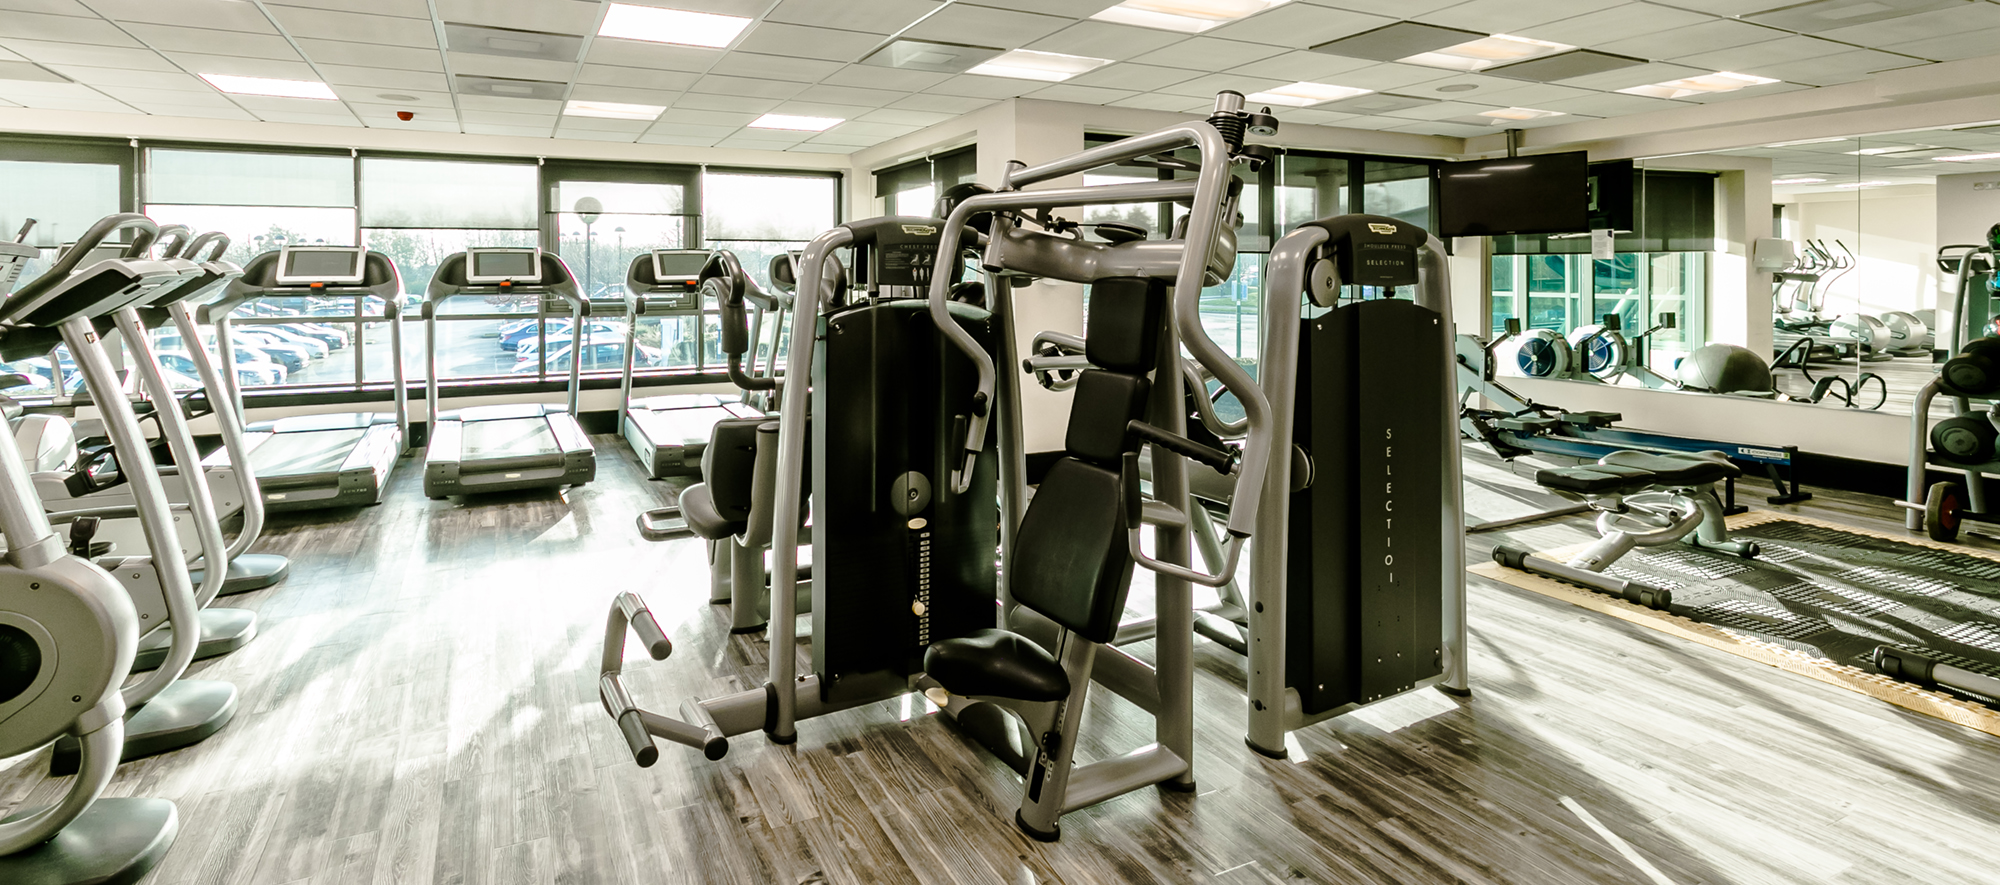 gym nottingham belfry